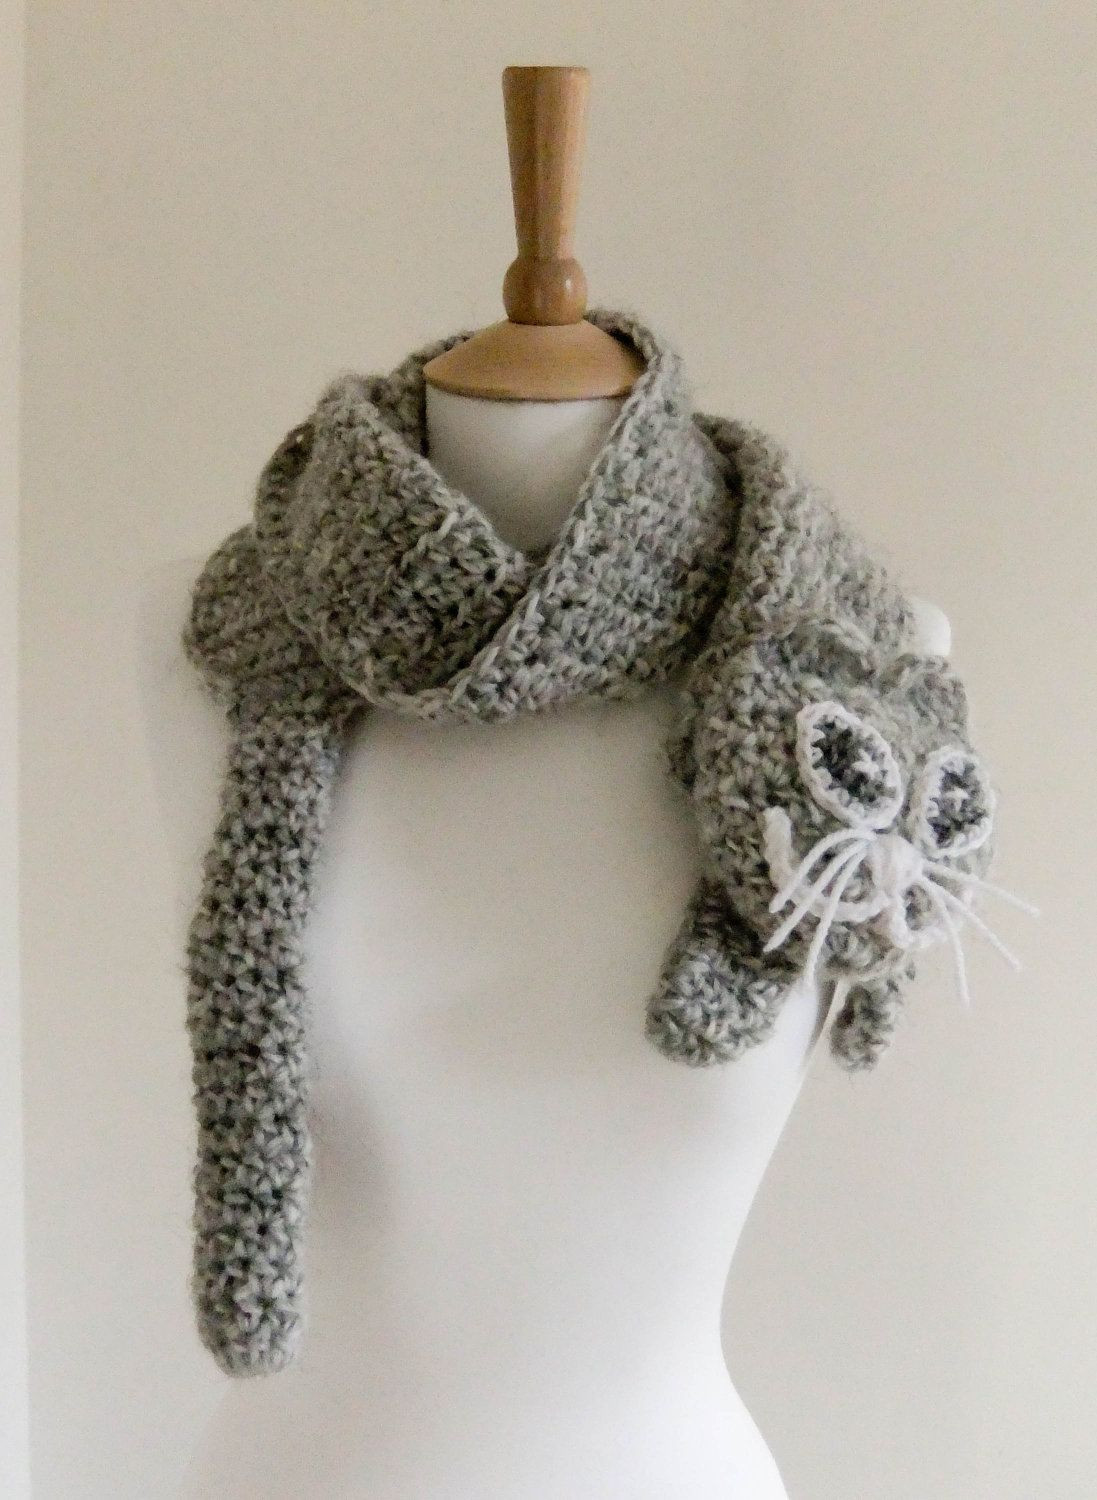 Crochet Neck Scarf Elegant Crochet Free Cat Projects Of Great 50 Ideas Crochet Neck Scarf